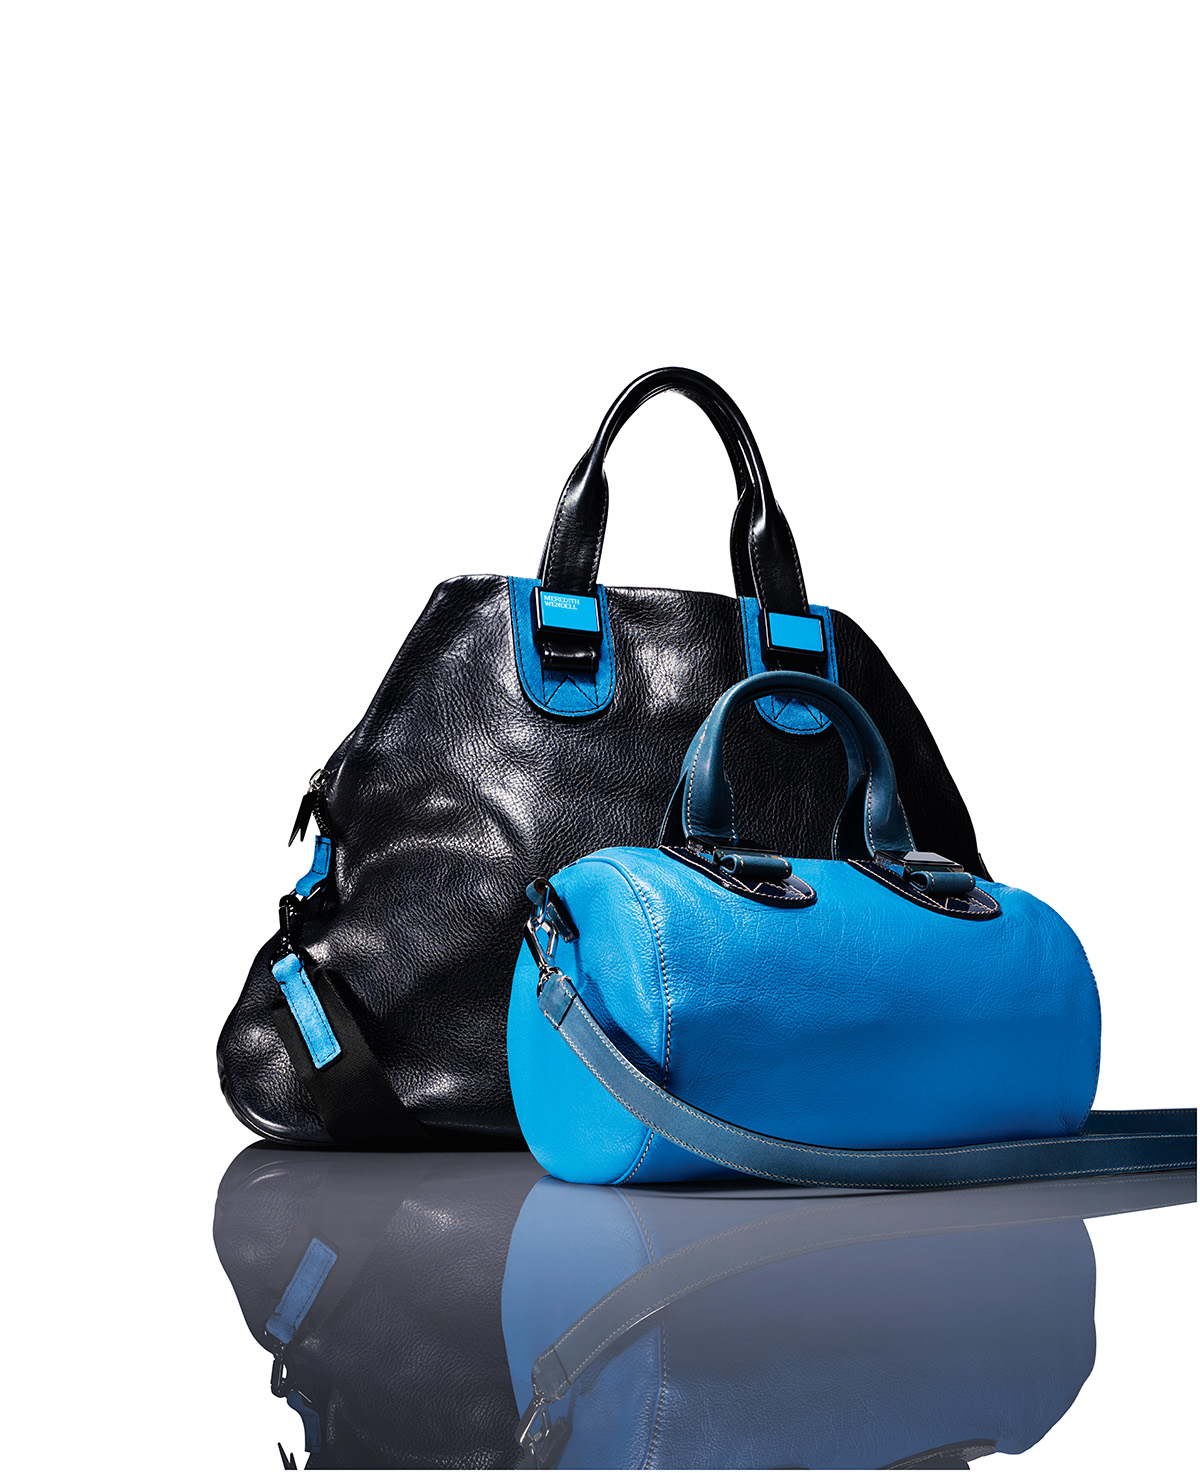 mmeredith wendell handbags